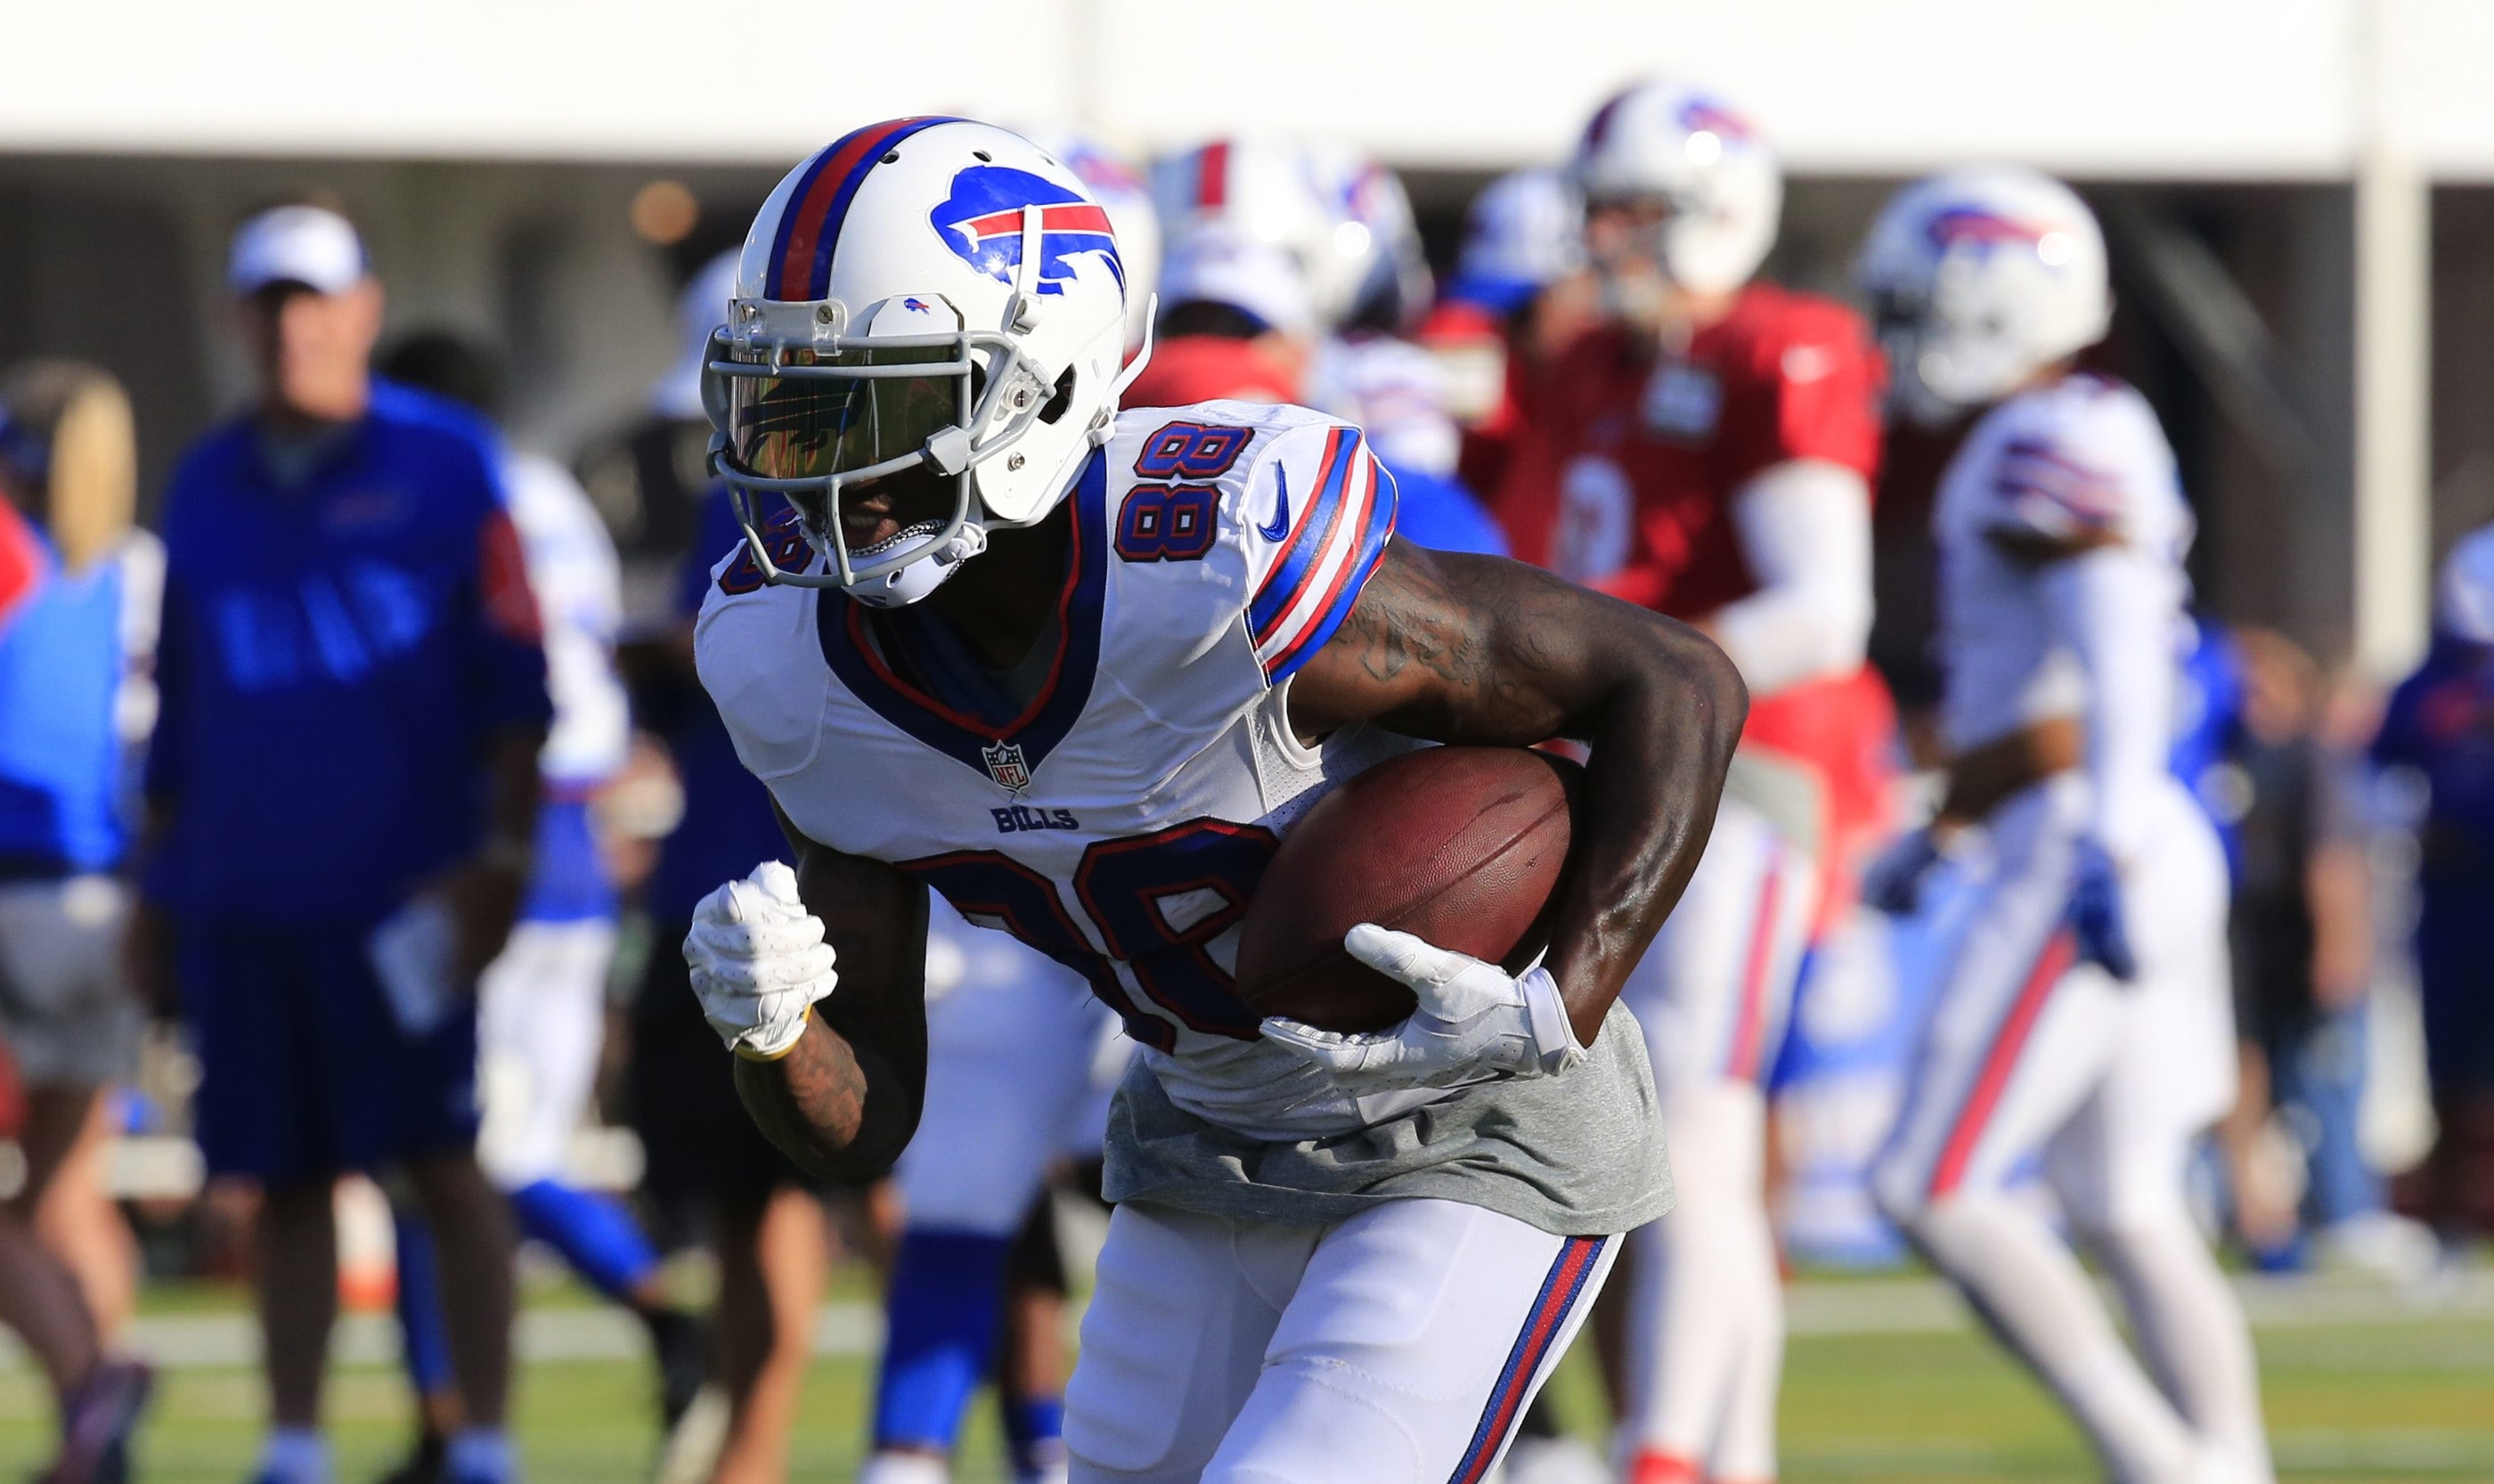 Bills receiver Marquise Goodwin, who missed qualifying for the Olympics, will attempt to revive a football career that has been derailed by injuries.